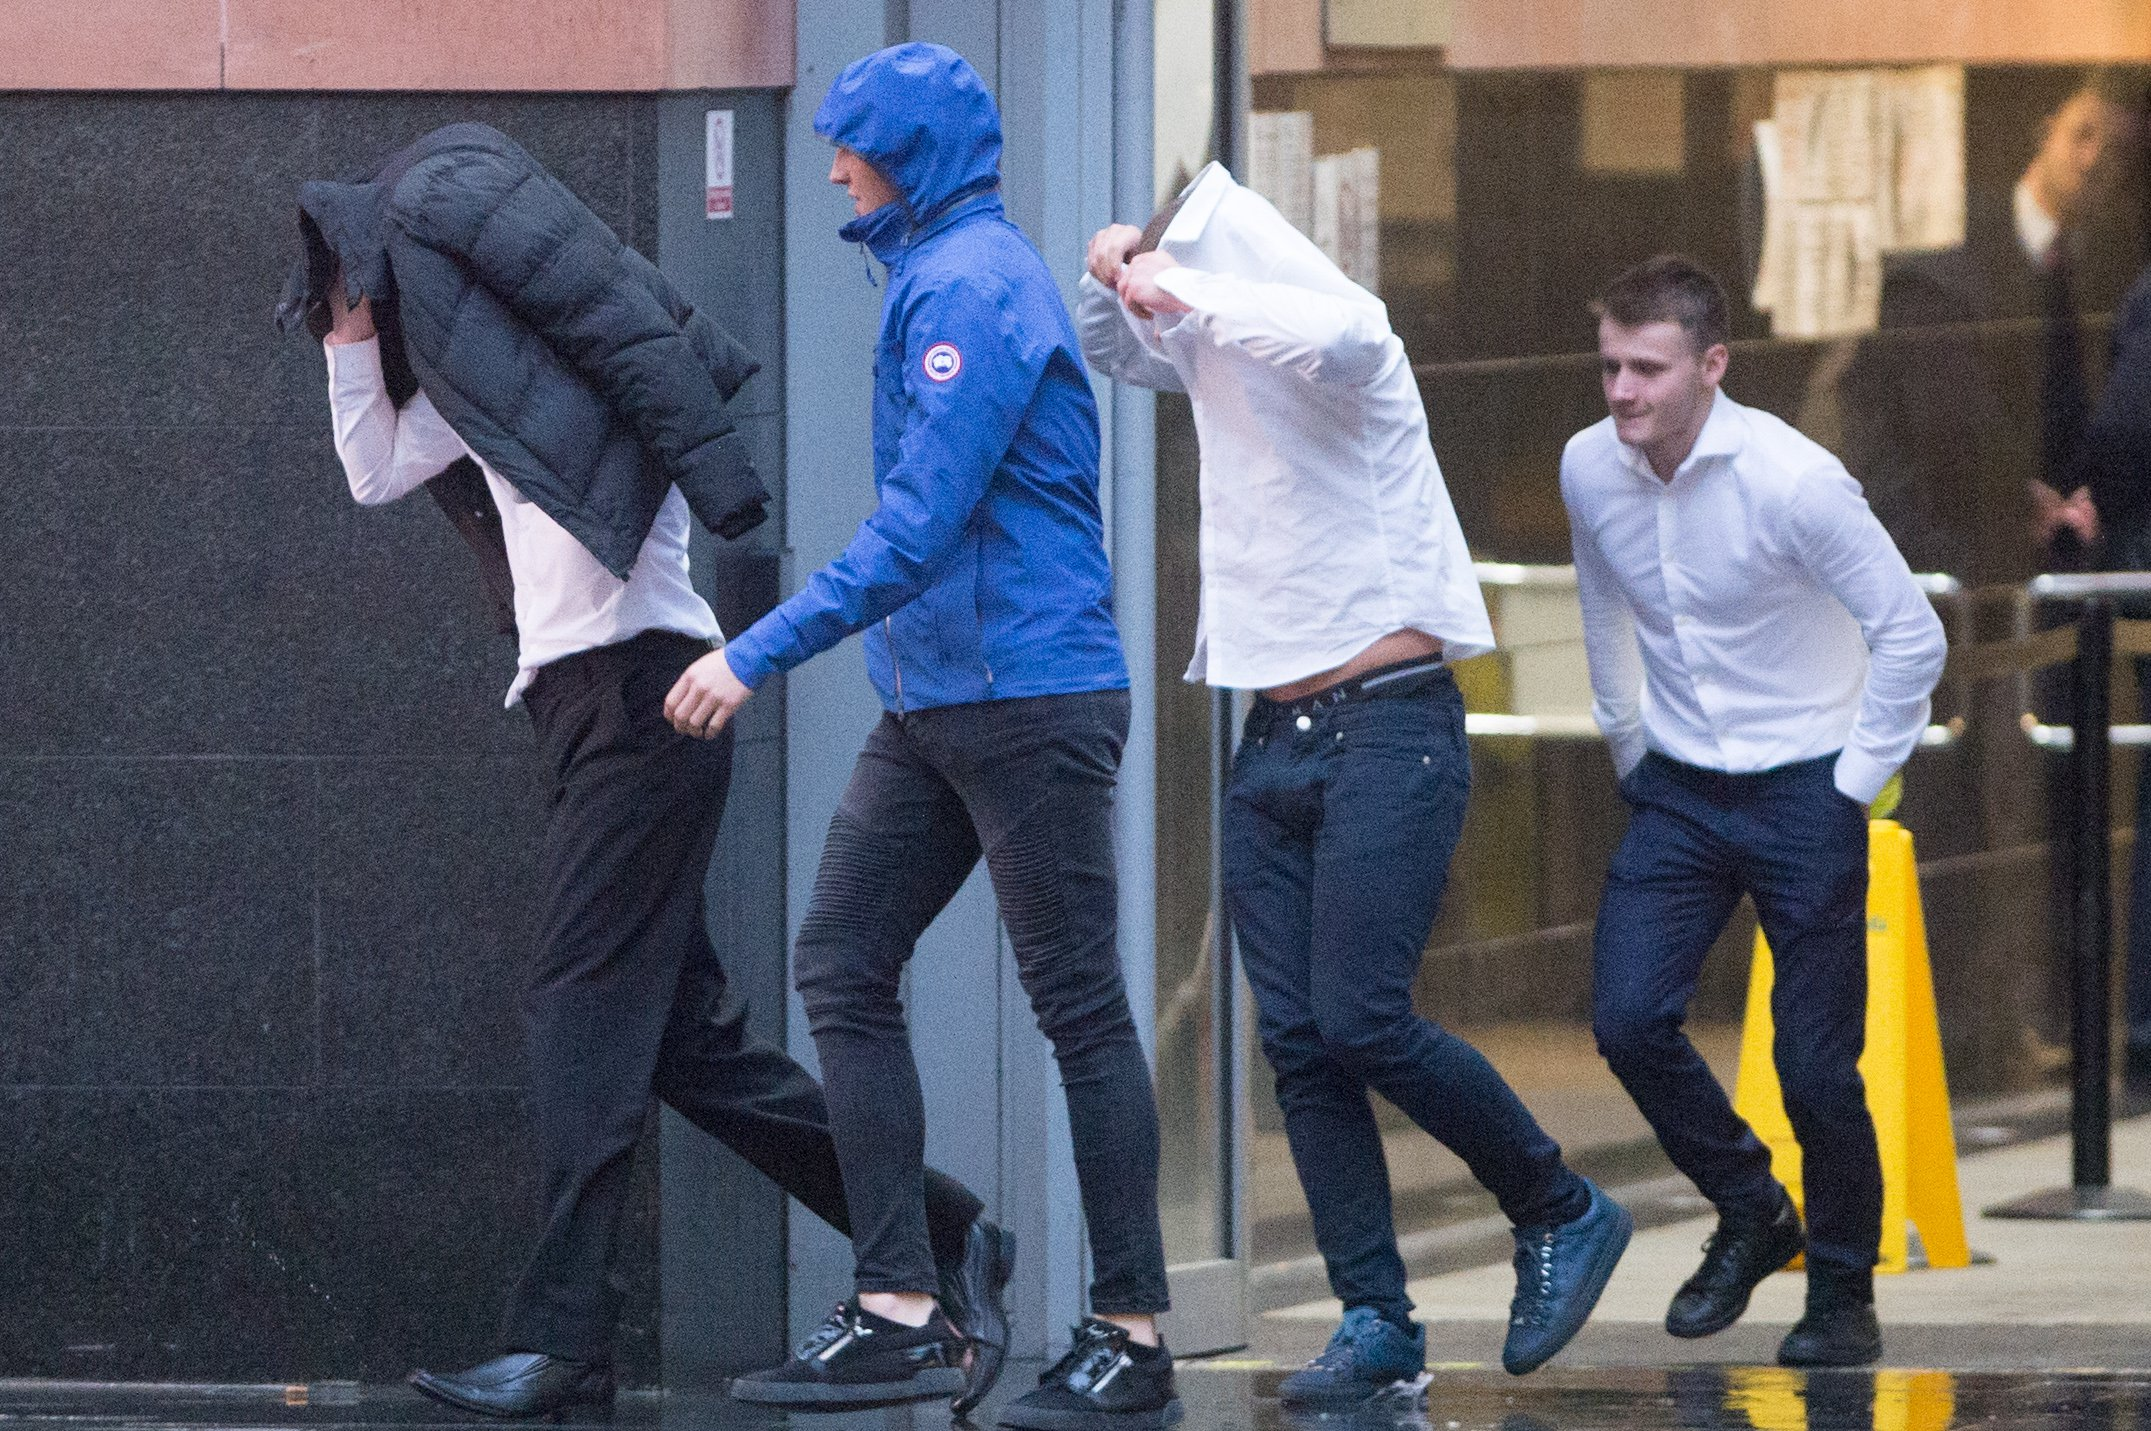 Lewis Hart, Lewis Hall, Jordan Taylor and Elliot Burnie (far right, uncovered) leaving Manchester Magistrates court after recieving 12 month community orders and 40 hours unpaid work for vandalising a first world war tribute in Rochdale. Disclaimer: While Cavendish Press (Manchester) Ltd uses its' best endeavours to establish the copyright and authenticity of all pictures supplied, it accepts no liability for any damage, loss or legal action caused by the use of images supplied. The publication of images is solely at your discretion. For terms and conditions see http://www.cavendish-press.co.uk/pages/terms-and-conditions.aspx